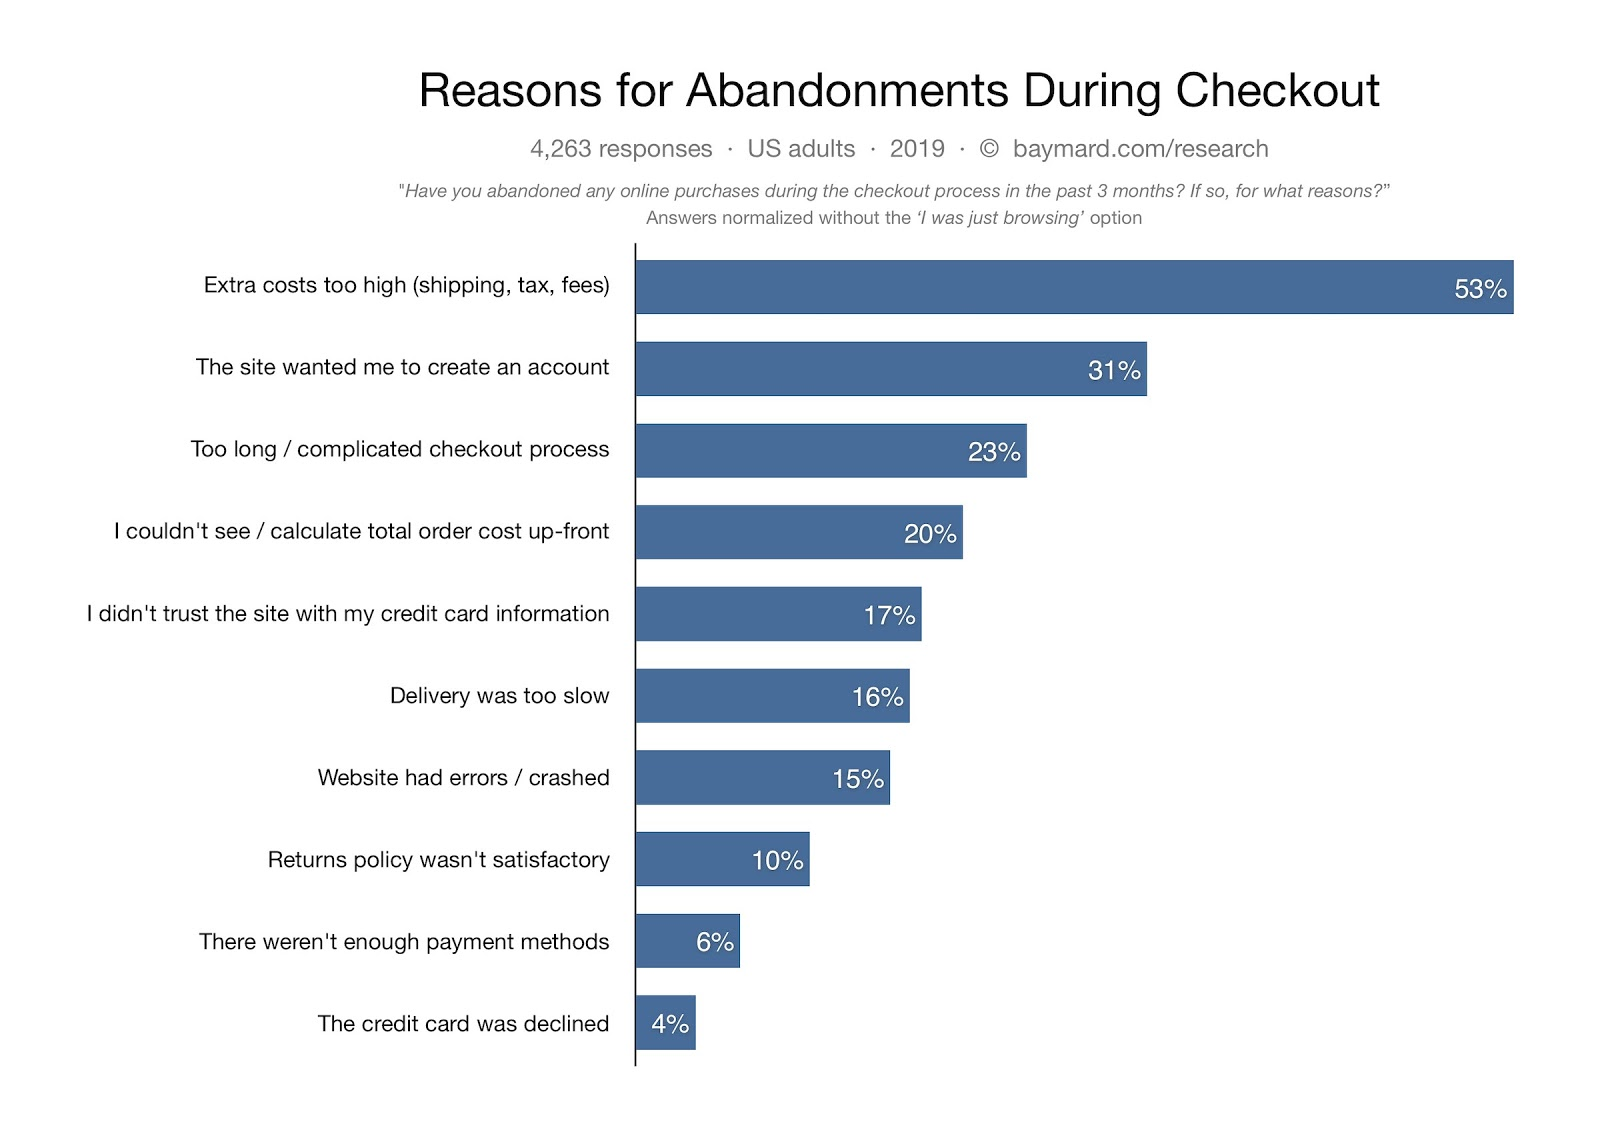 Reasons for abandonment.